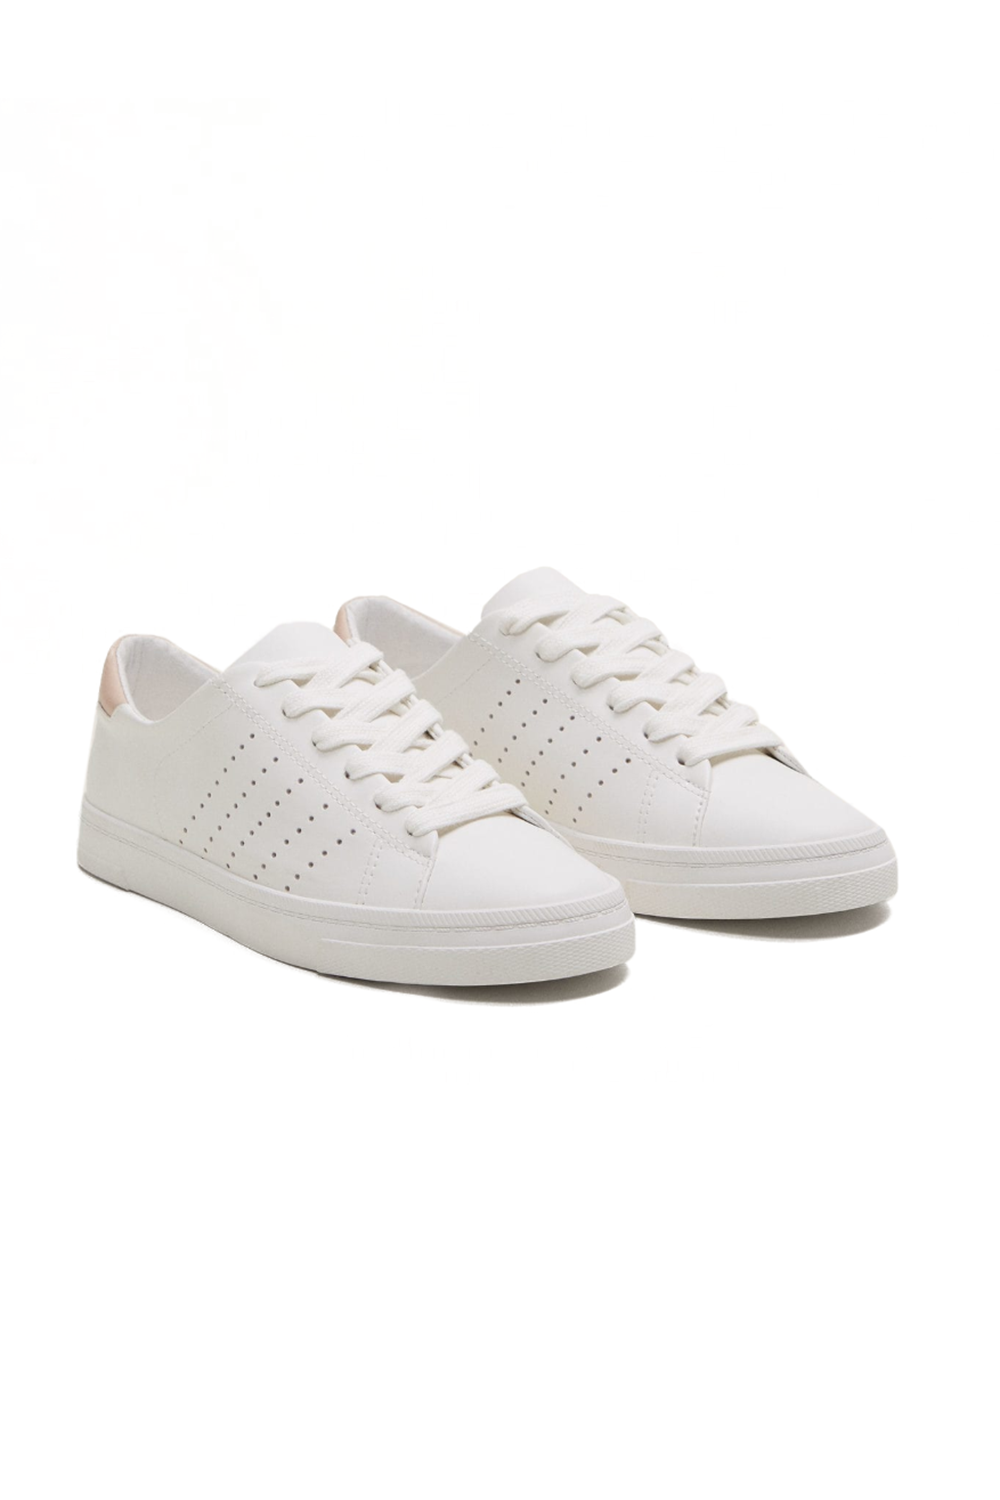 Cute, and Environmentally Friendly Mango, $50 SHOP IT These vegan leather sneakers are perfect for Saturday errand runs.